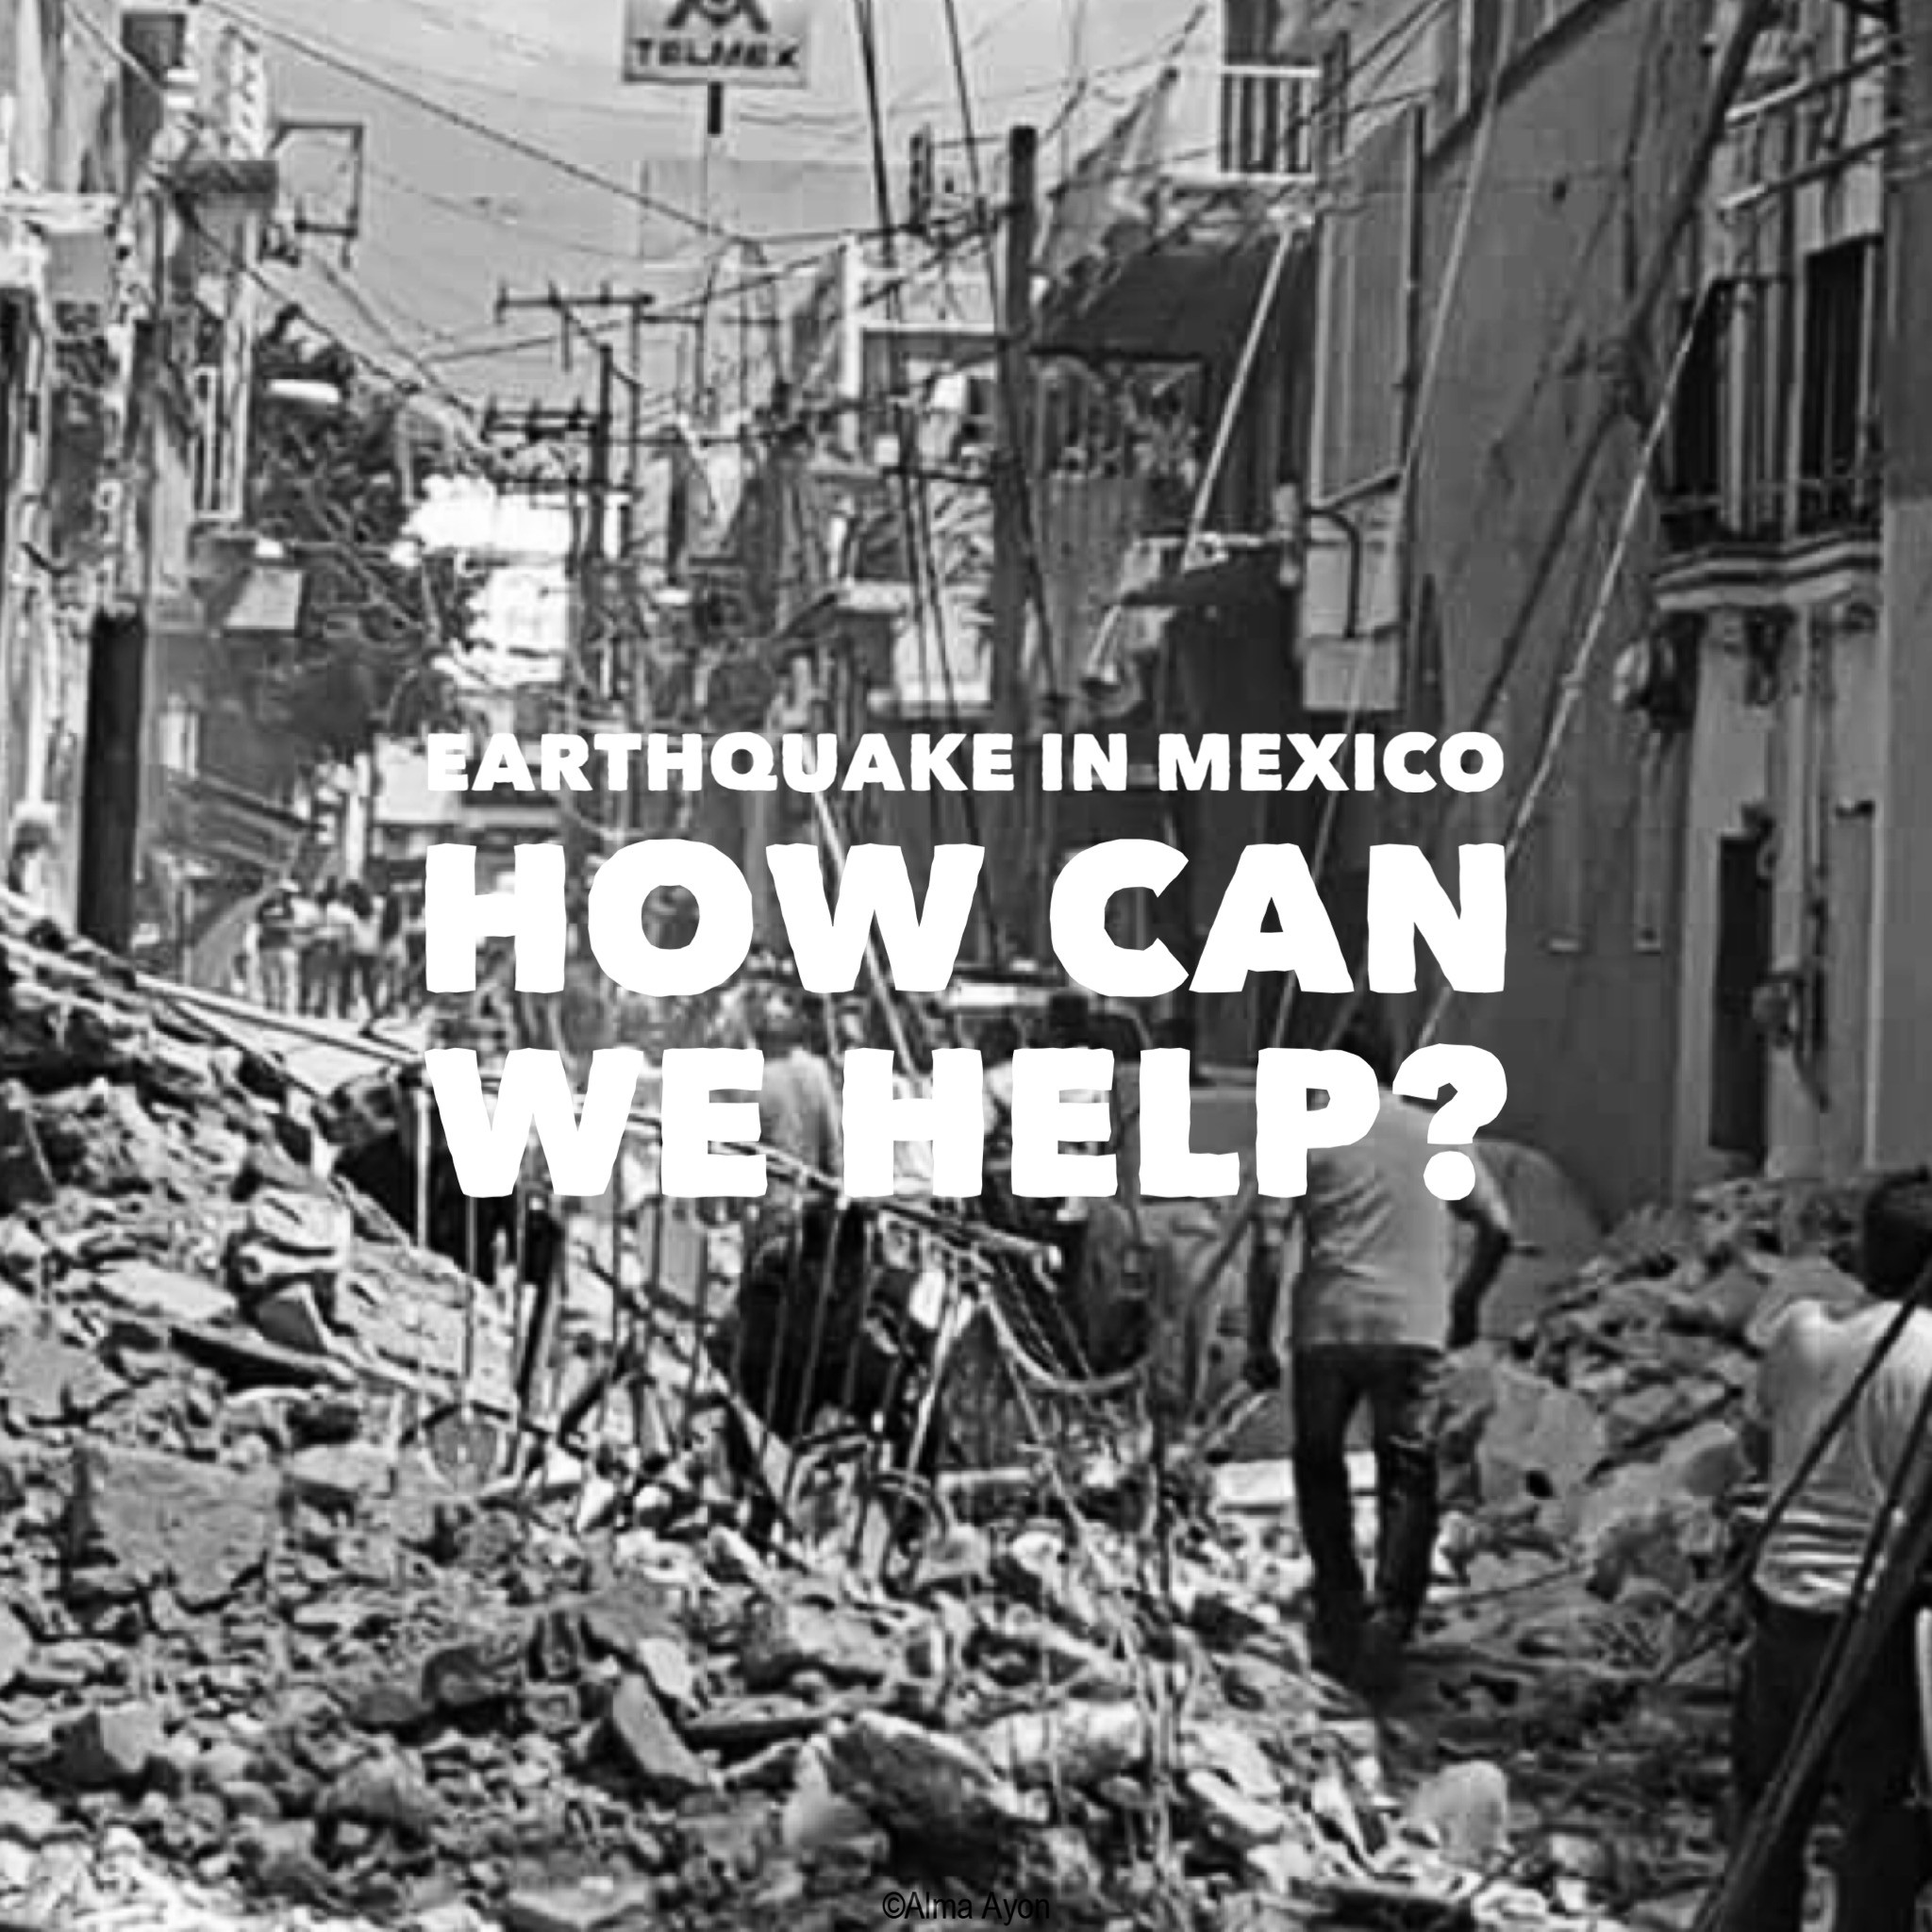 Earthquake in Mexico: how can we help?